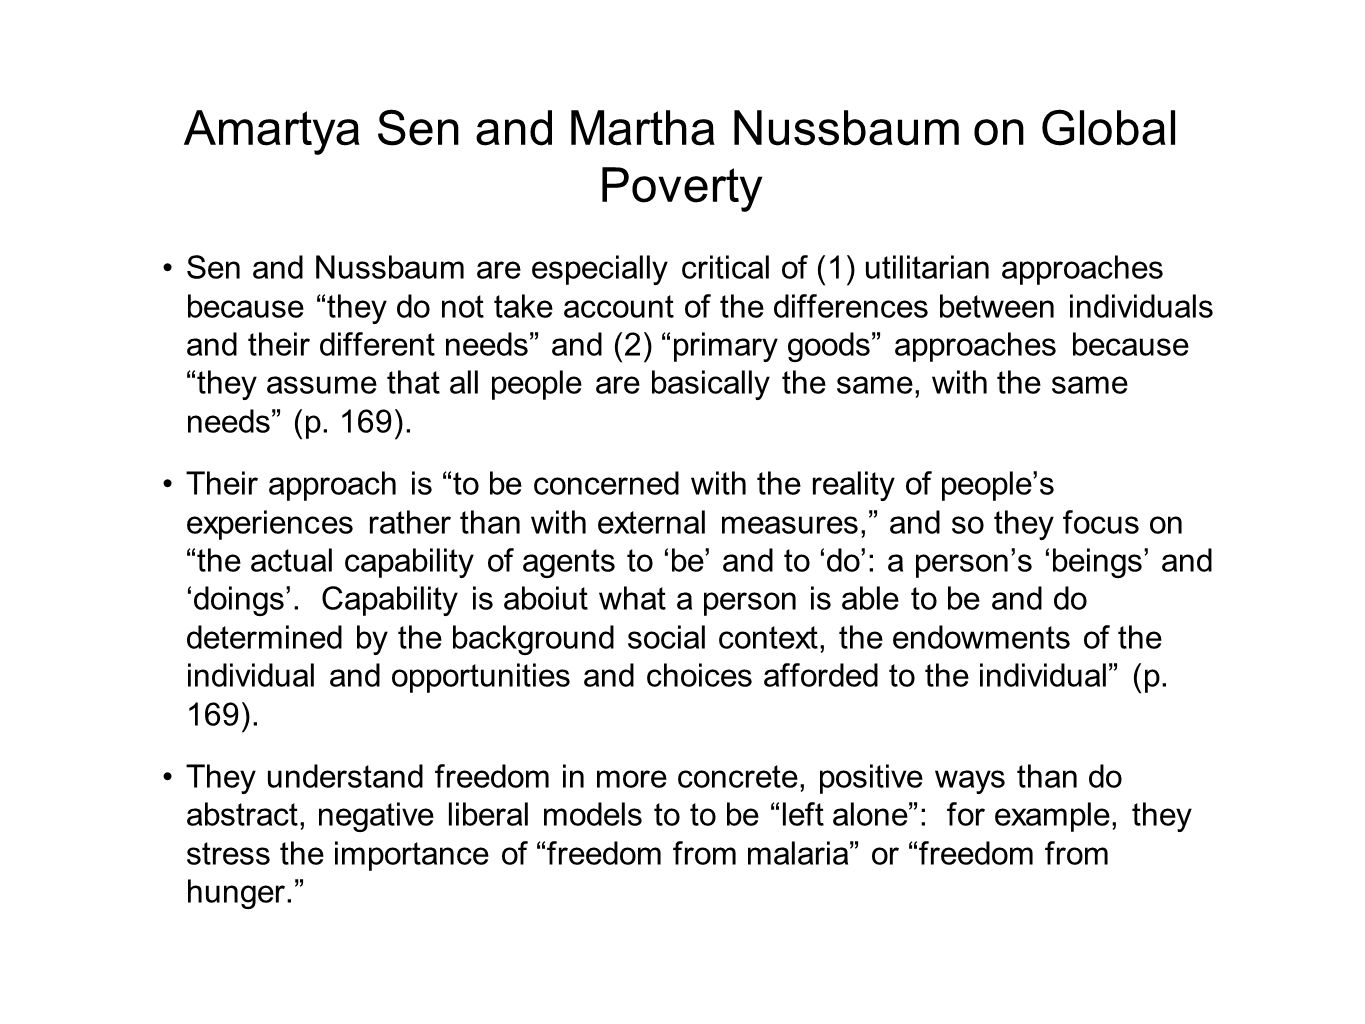 Amartya Sen and Martha Nussbaum on Global Poverty Sen and Nussbaum are especially critical of (1) utilitarian approaches because they do not take account of the differences between individuals and their different needs and (2) primary goods approaches because they assume that all people are basically the same, with the same needs (p.